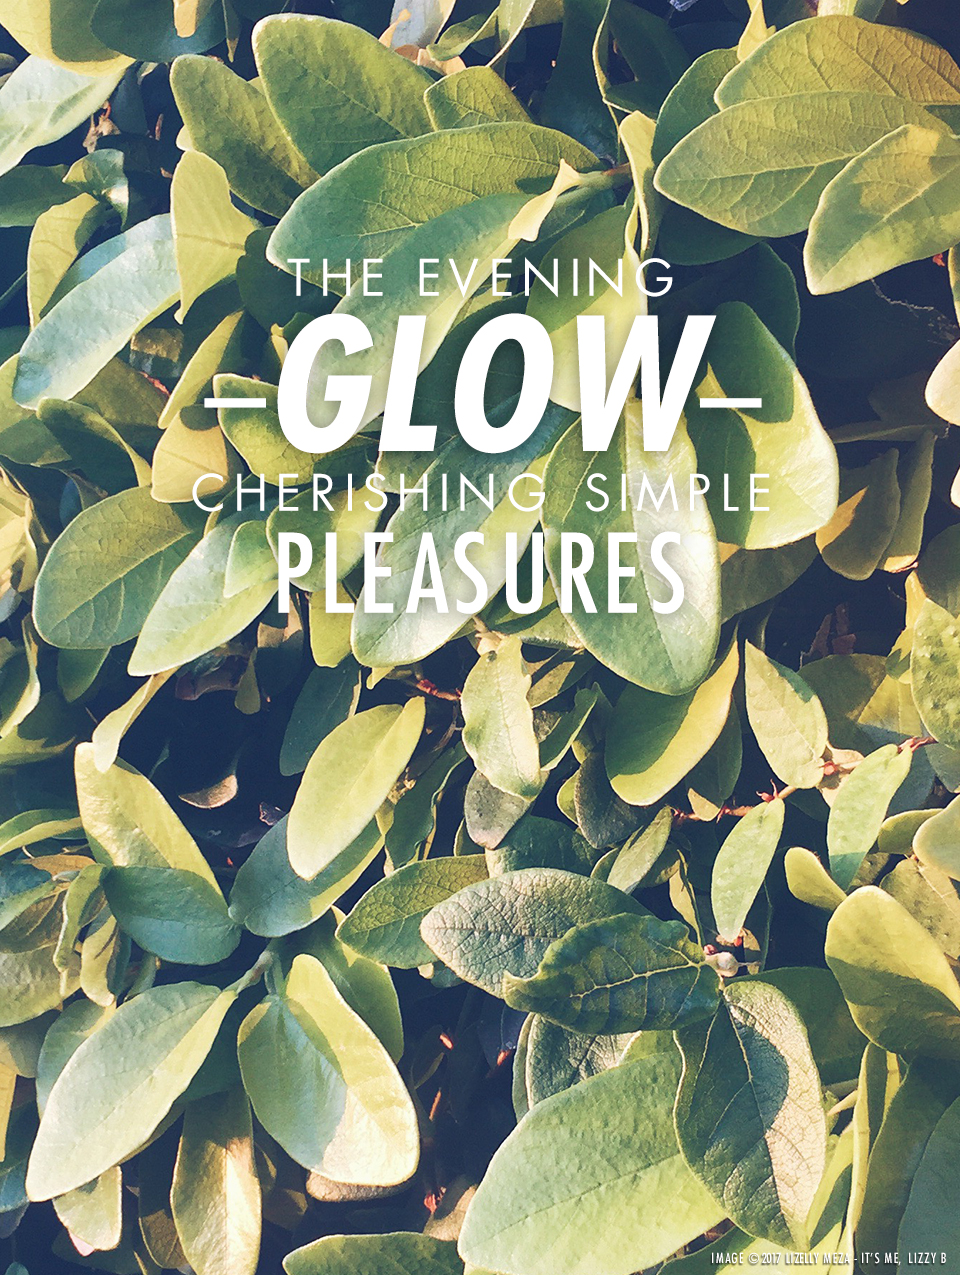 The Evening Glow—Cherishing Simple Pleasures // It's Me, Lizzy B - Musings on Life, Business, & The Pursuit of Curiosity // Personal blog of Lizelly Meza